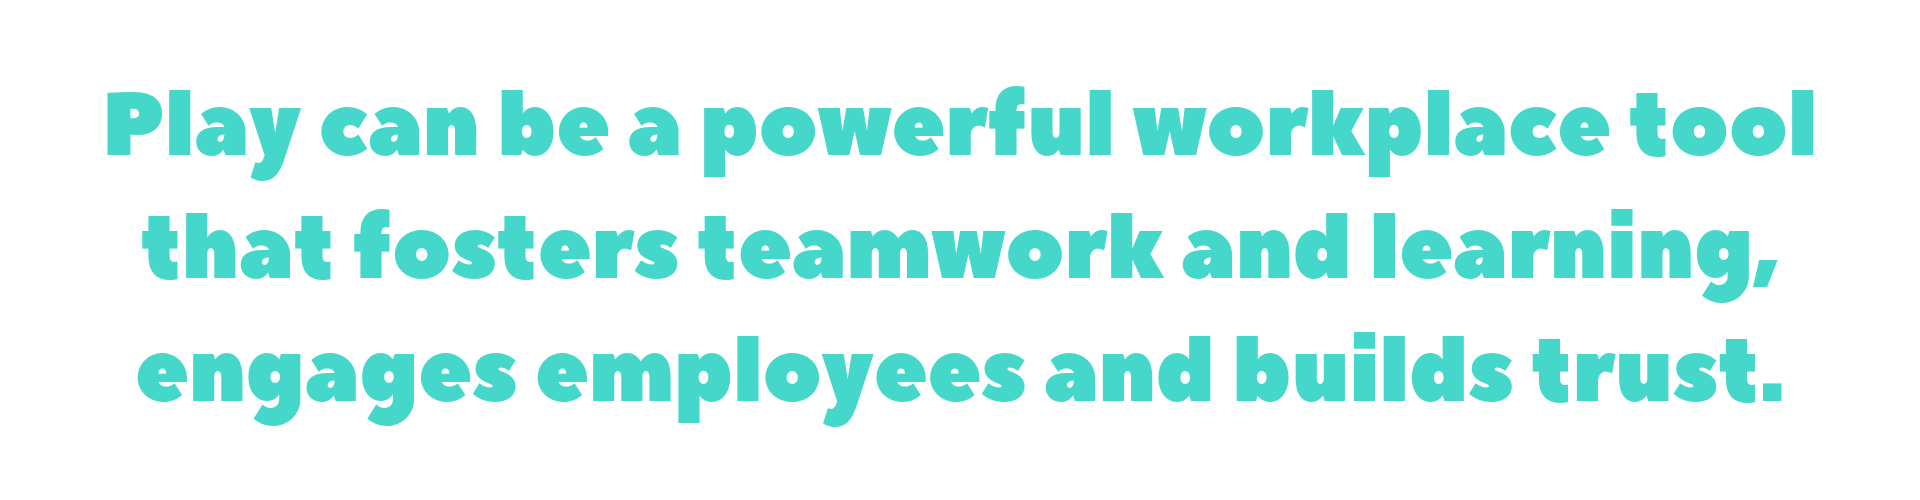 Play can be a powerful workplace tool that fosters teamwork and learning, engages employees and builds trust..png